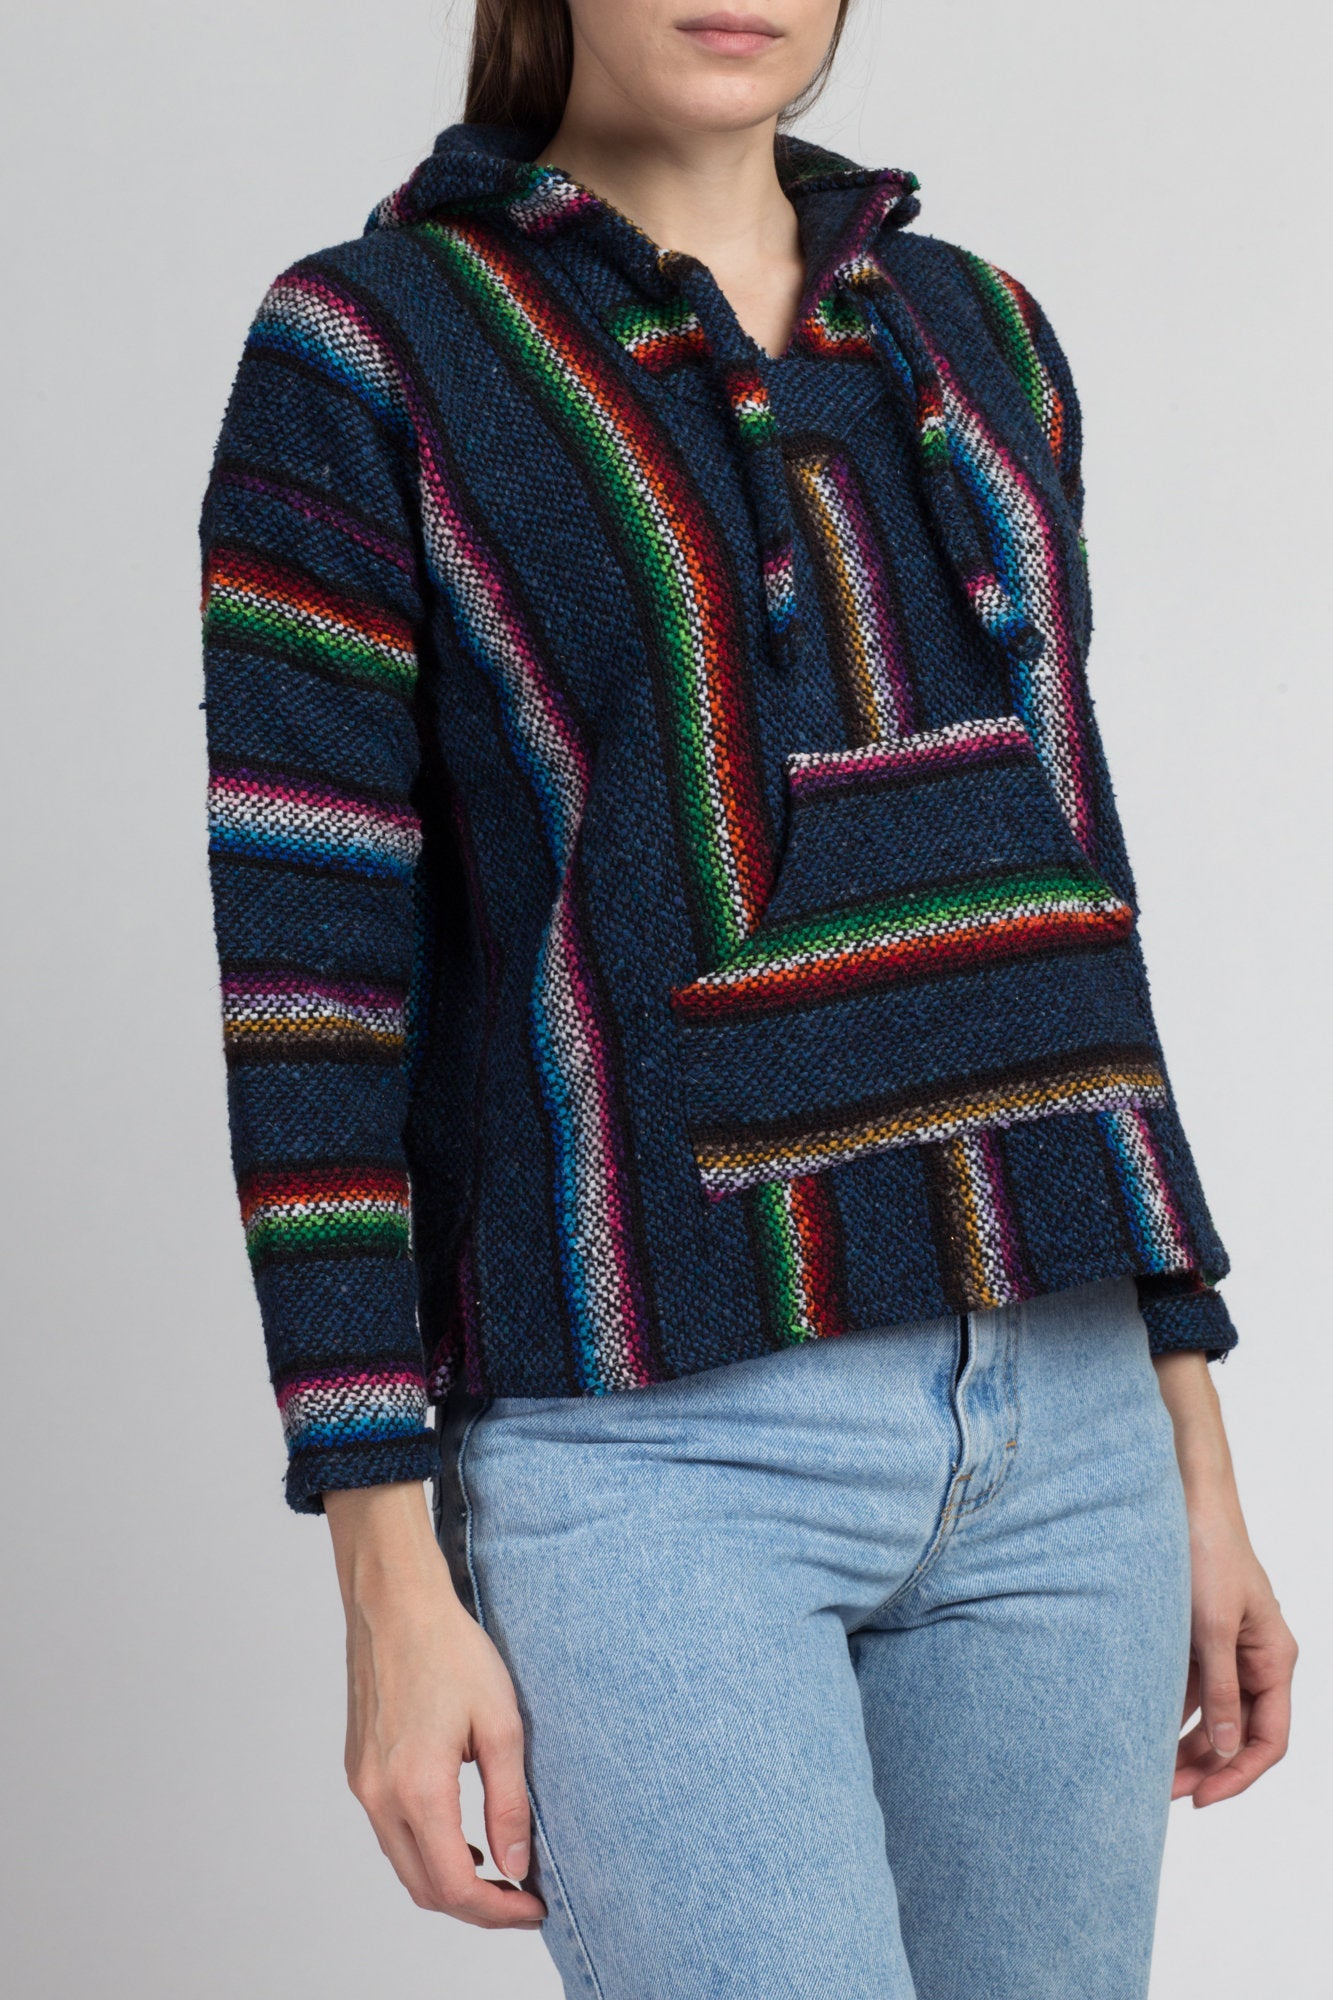 90s Rainbow Striped Drug Rug Hoodie - Small